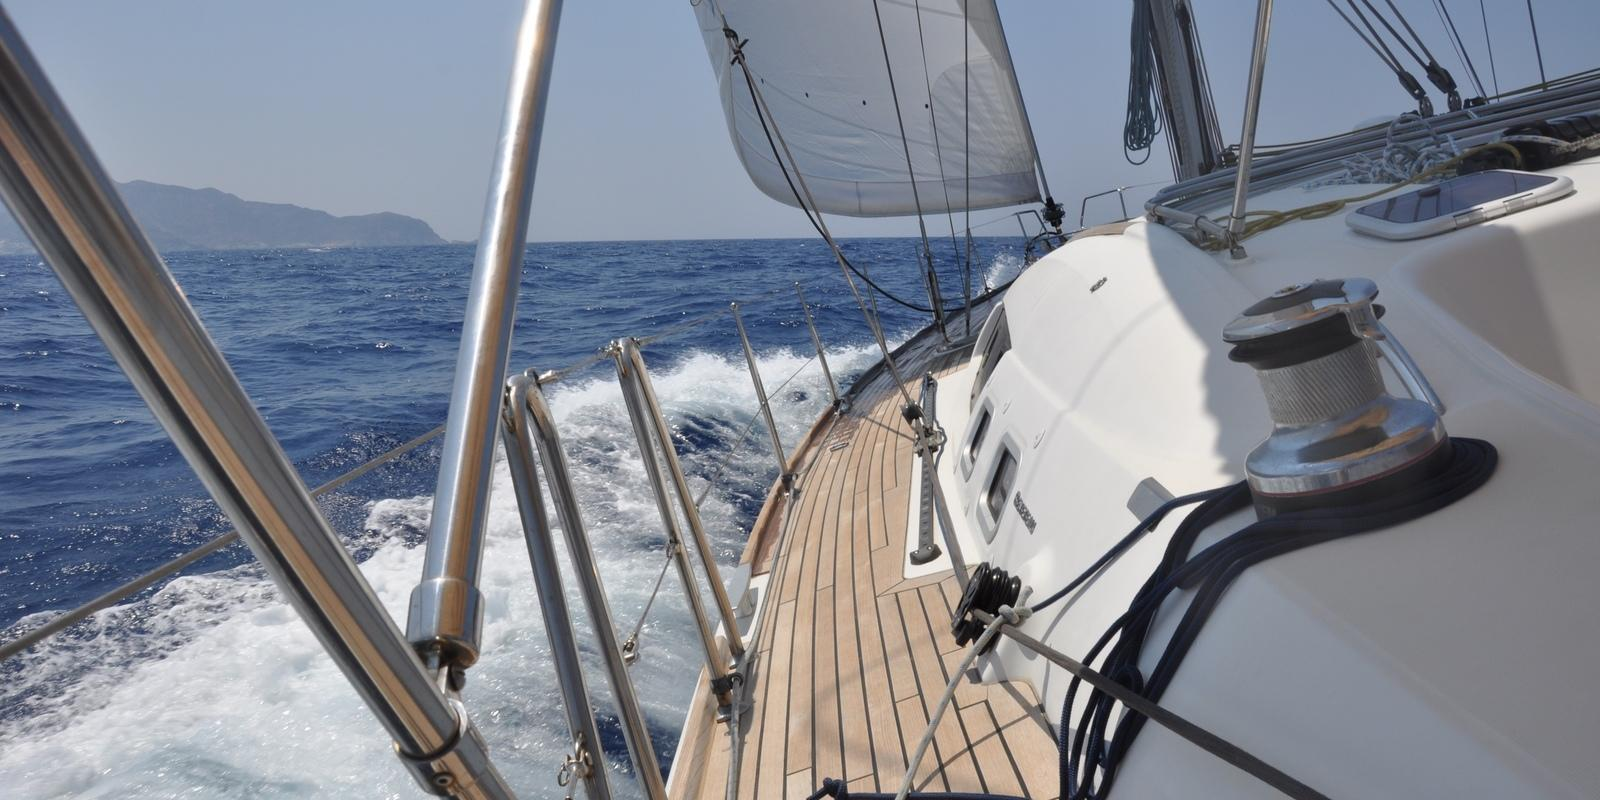 A Week Sailing the Magical Cyclades Islands - 4 cabins for just 3 people!